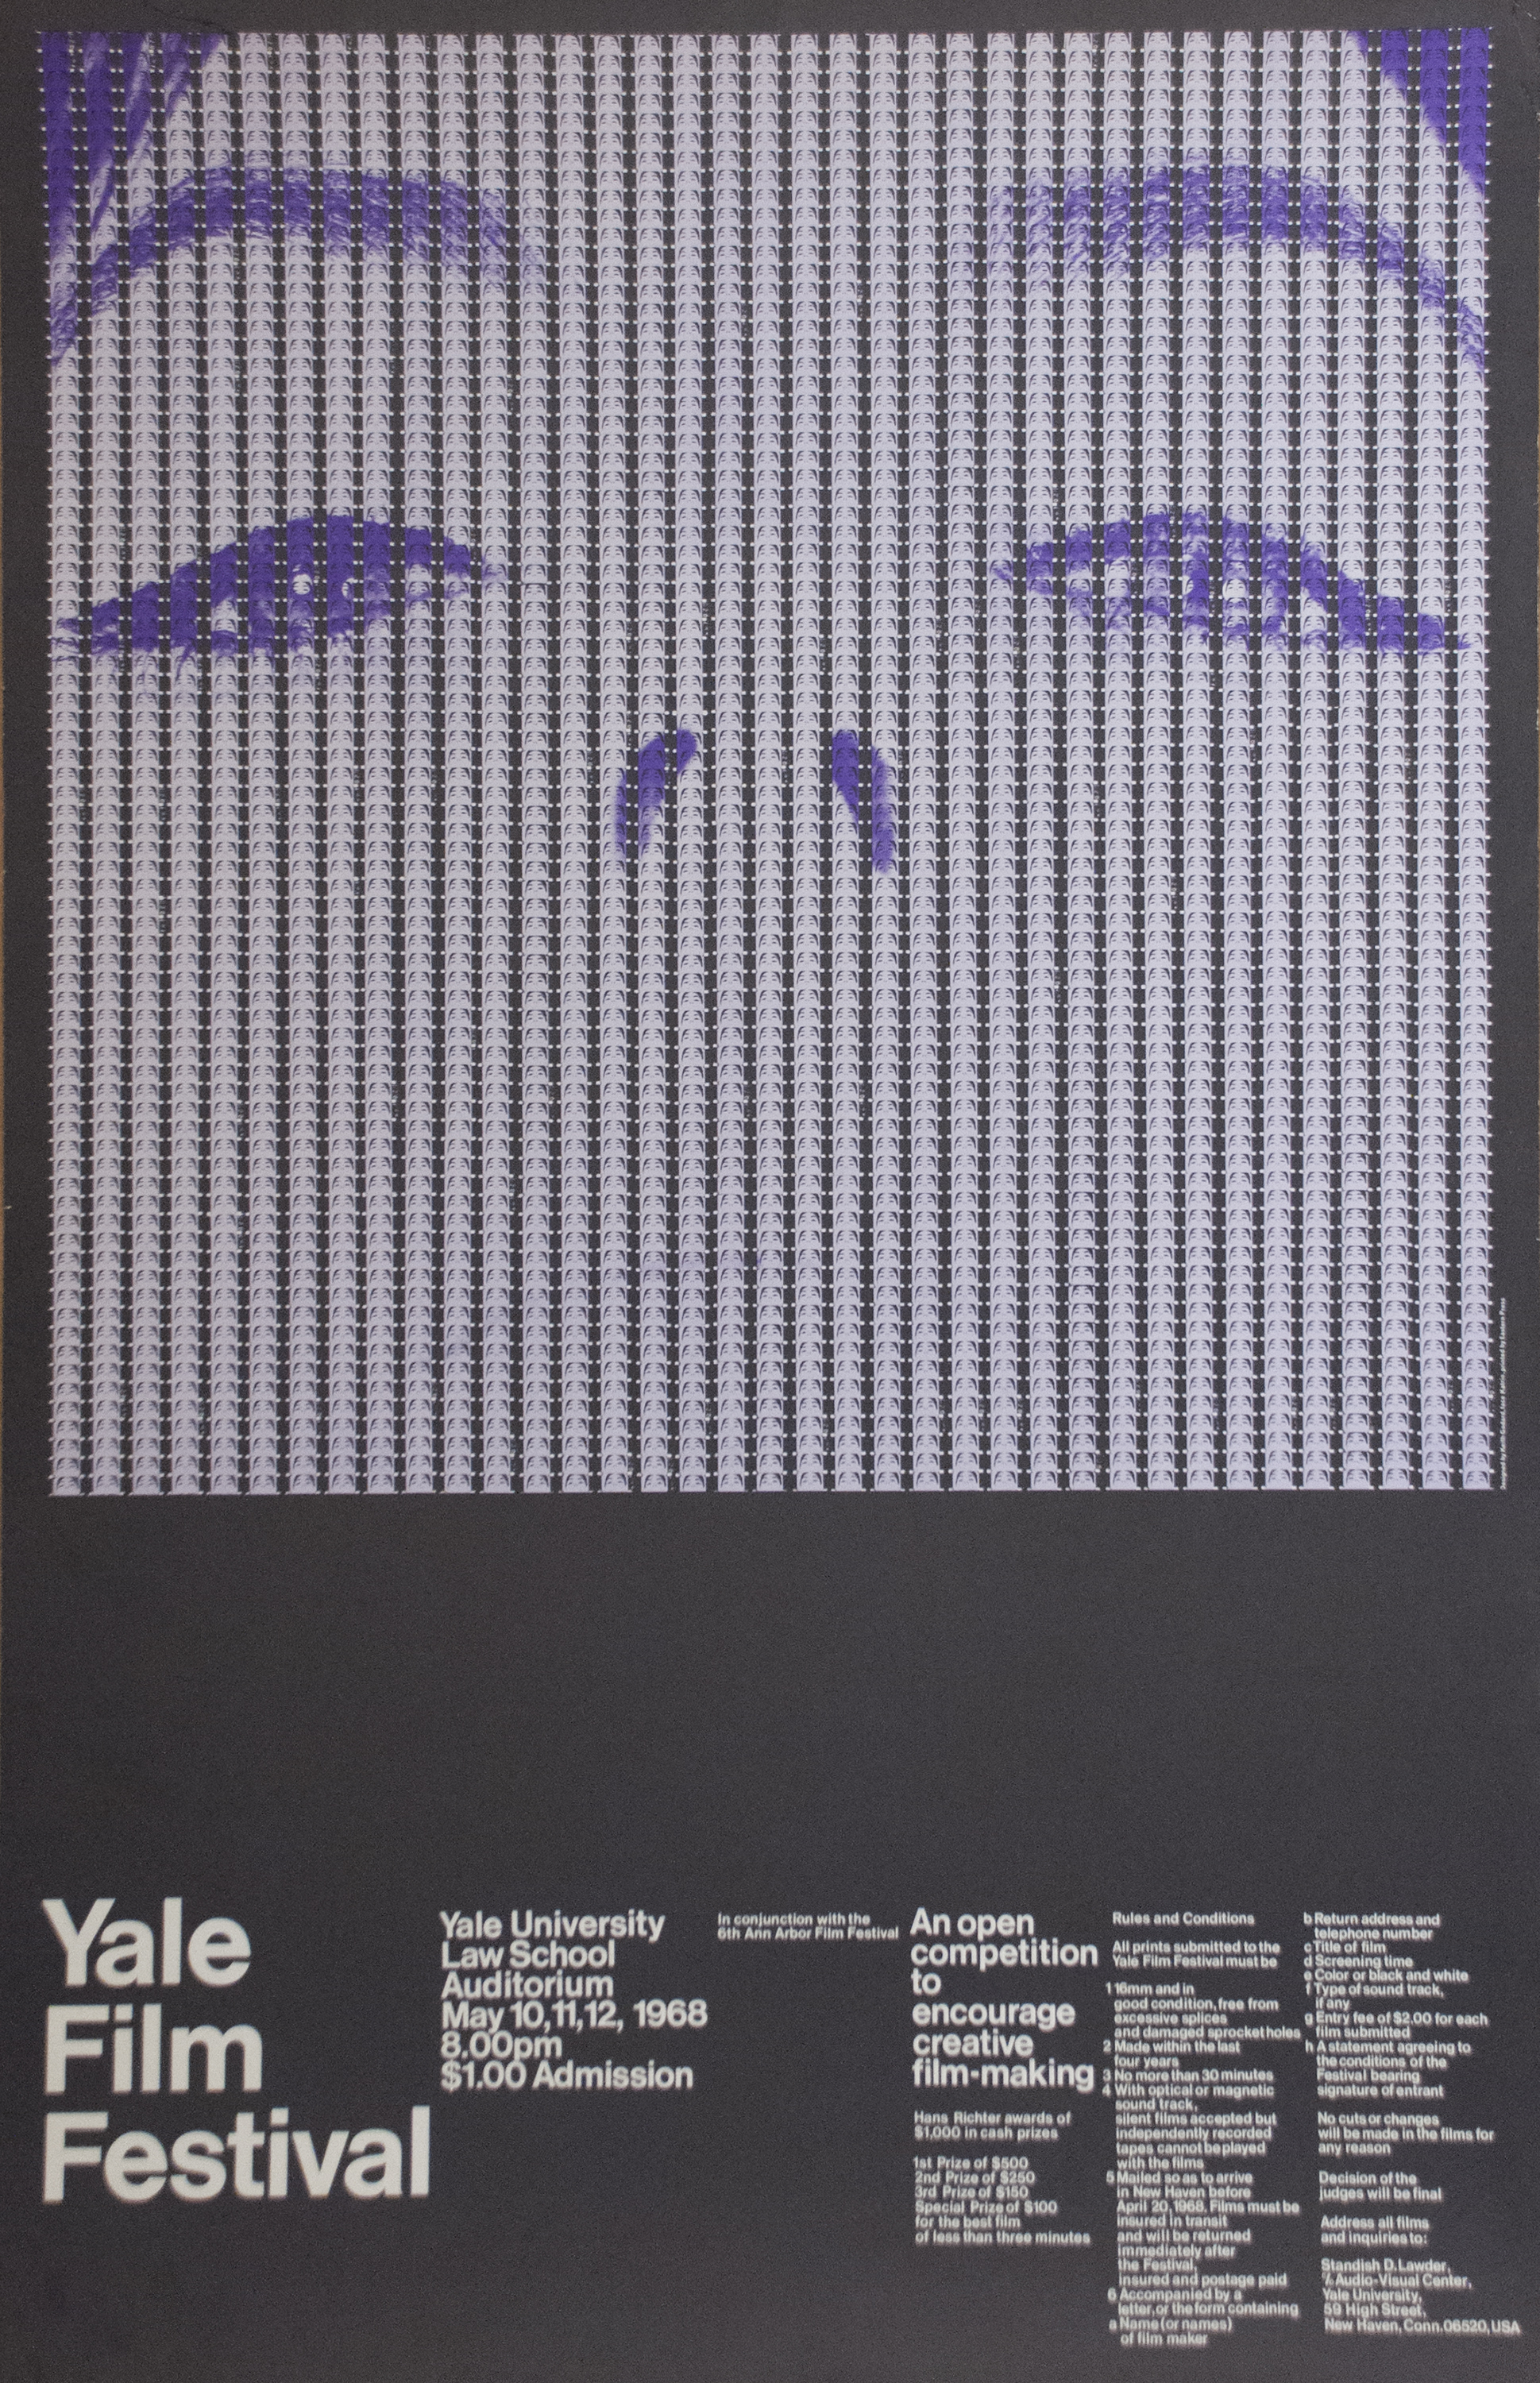 Depiction in purple and white of the eyes and nose of a woman's face made from the same image in miniature in the frames of several parallel strips of film laid vertically side by side.